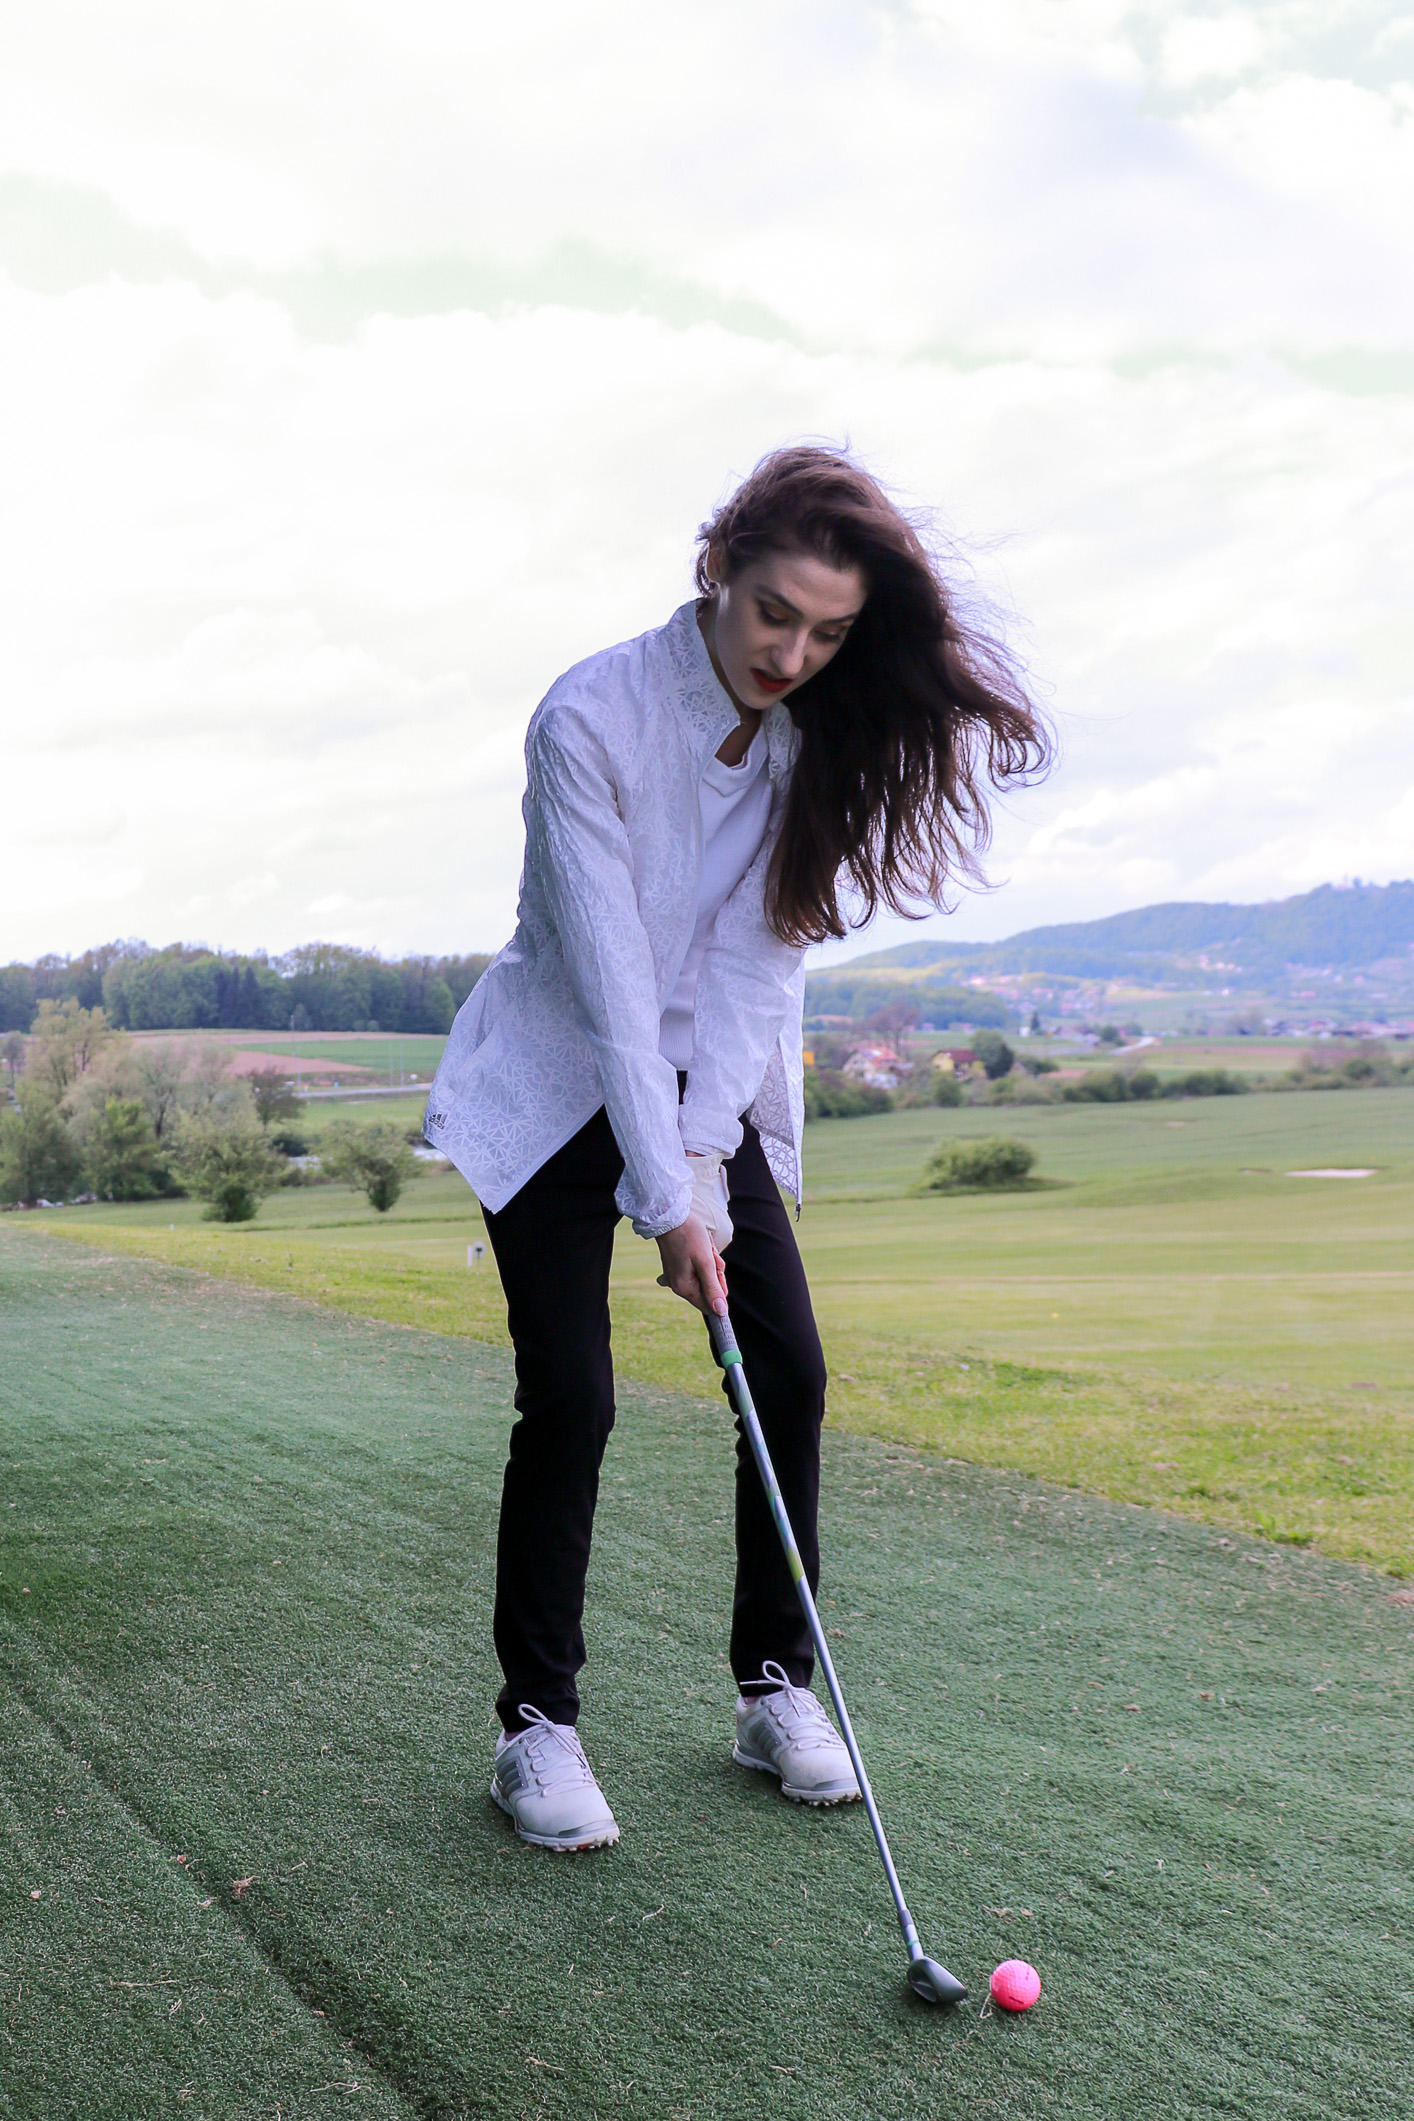 Fashion blogger Veronika Lipar of Brunette From Wall Street sharing where to get the most fashionable golf apparel